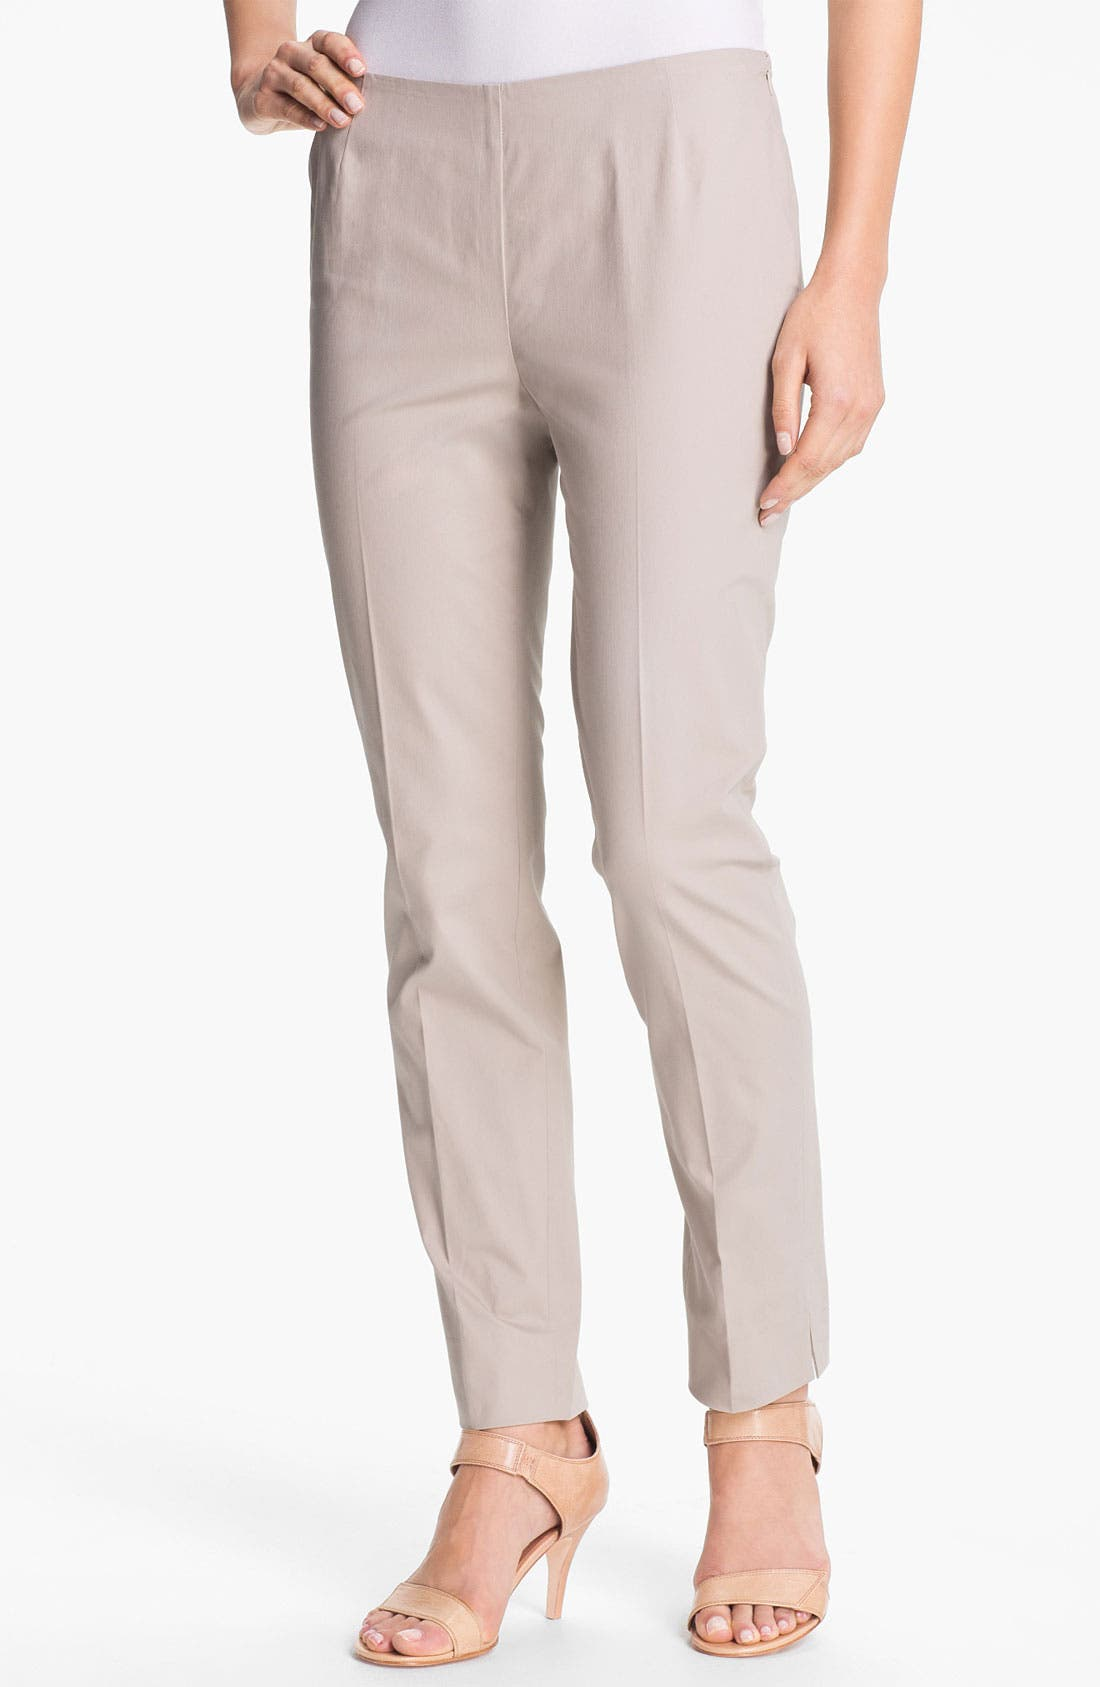 Main Image - Lafayette 148 New York Casual Cotton Side Zip Ankle Pants (Regular & Petite)